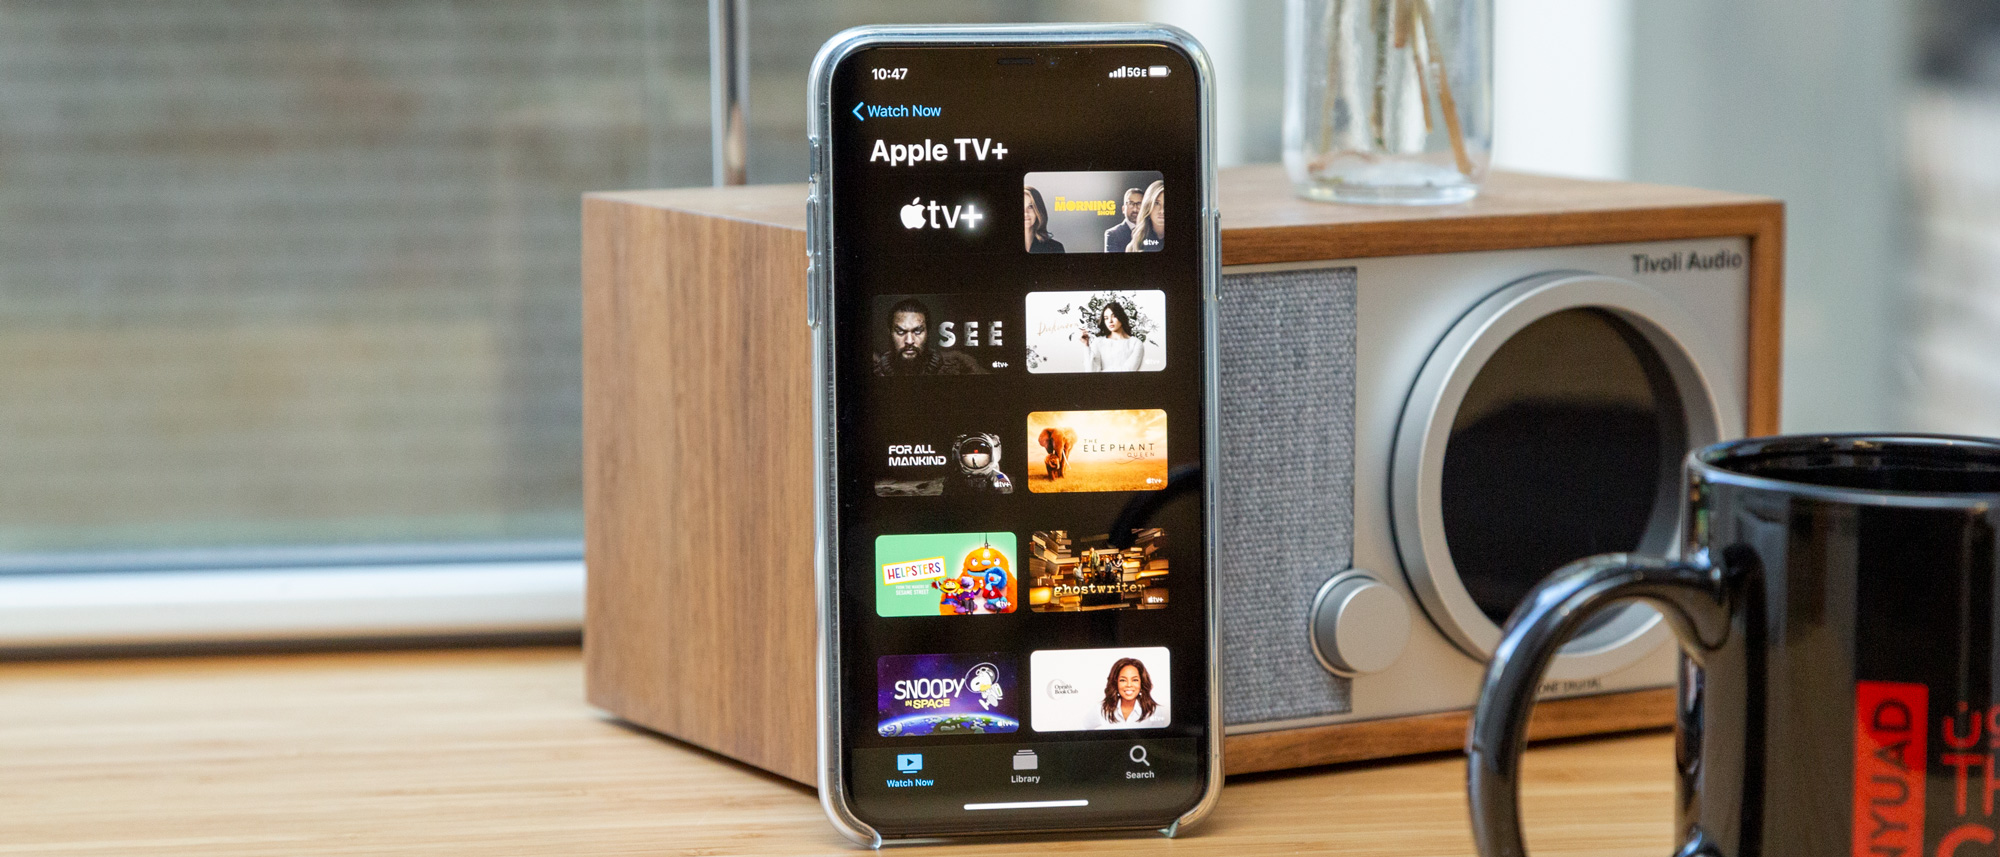 Apple TV Plus - We're not exactly plussed with Apple TV+.